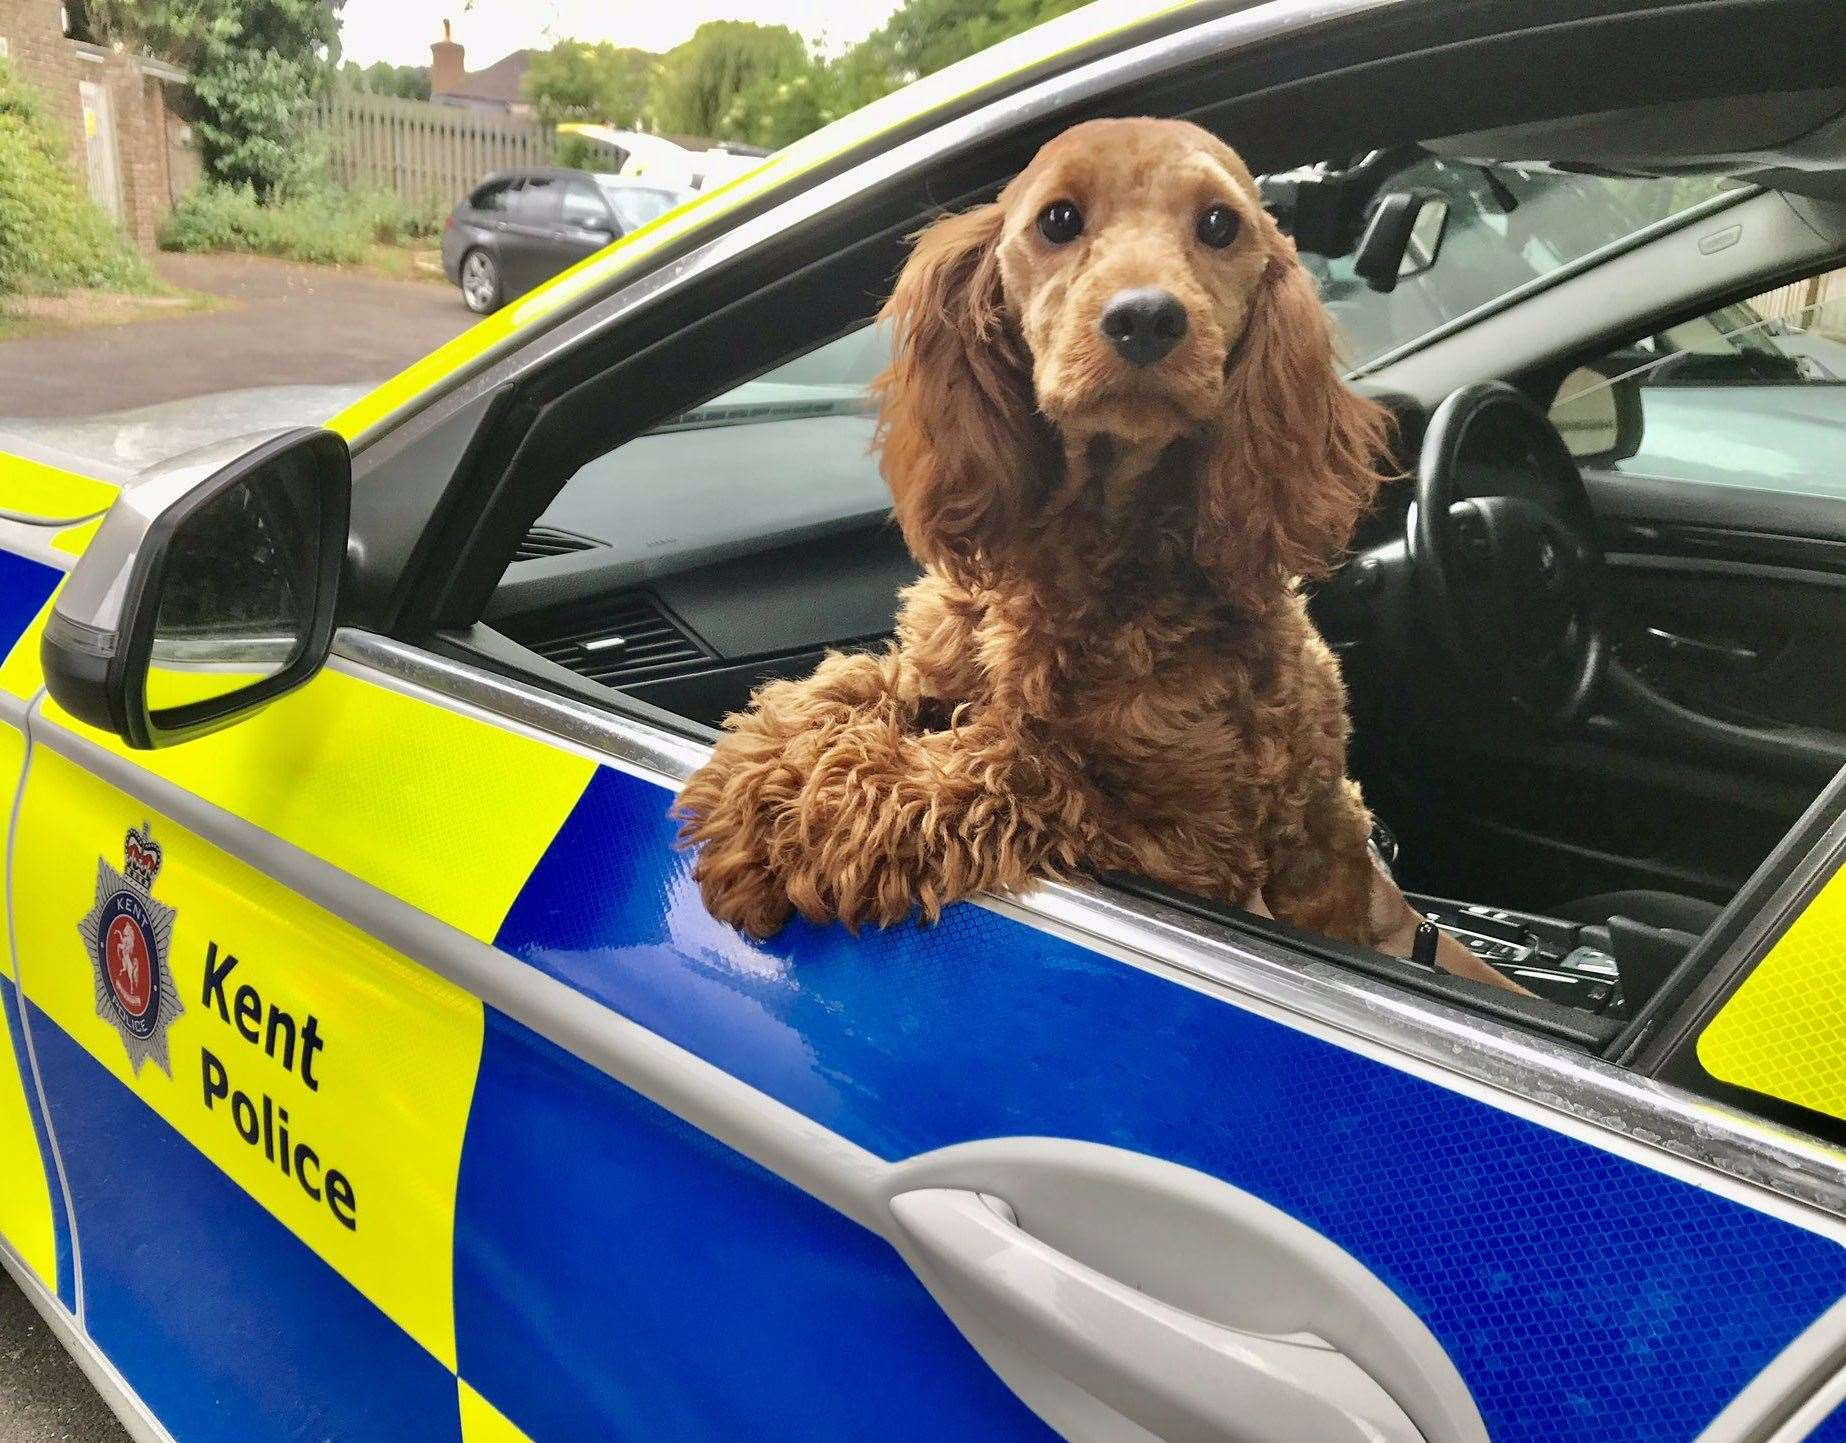 Stolen dog Peanut was found wandering along A249 in Miadstone near the Stockbury roundabout. Picture: @KPTacOps